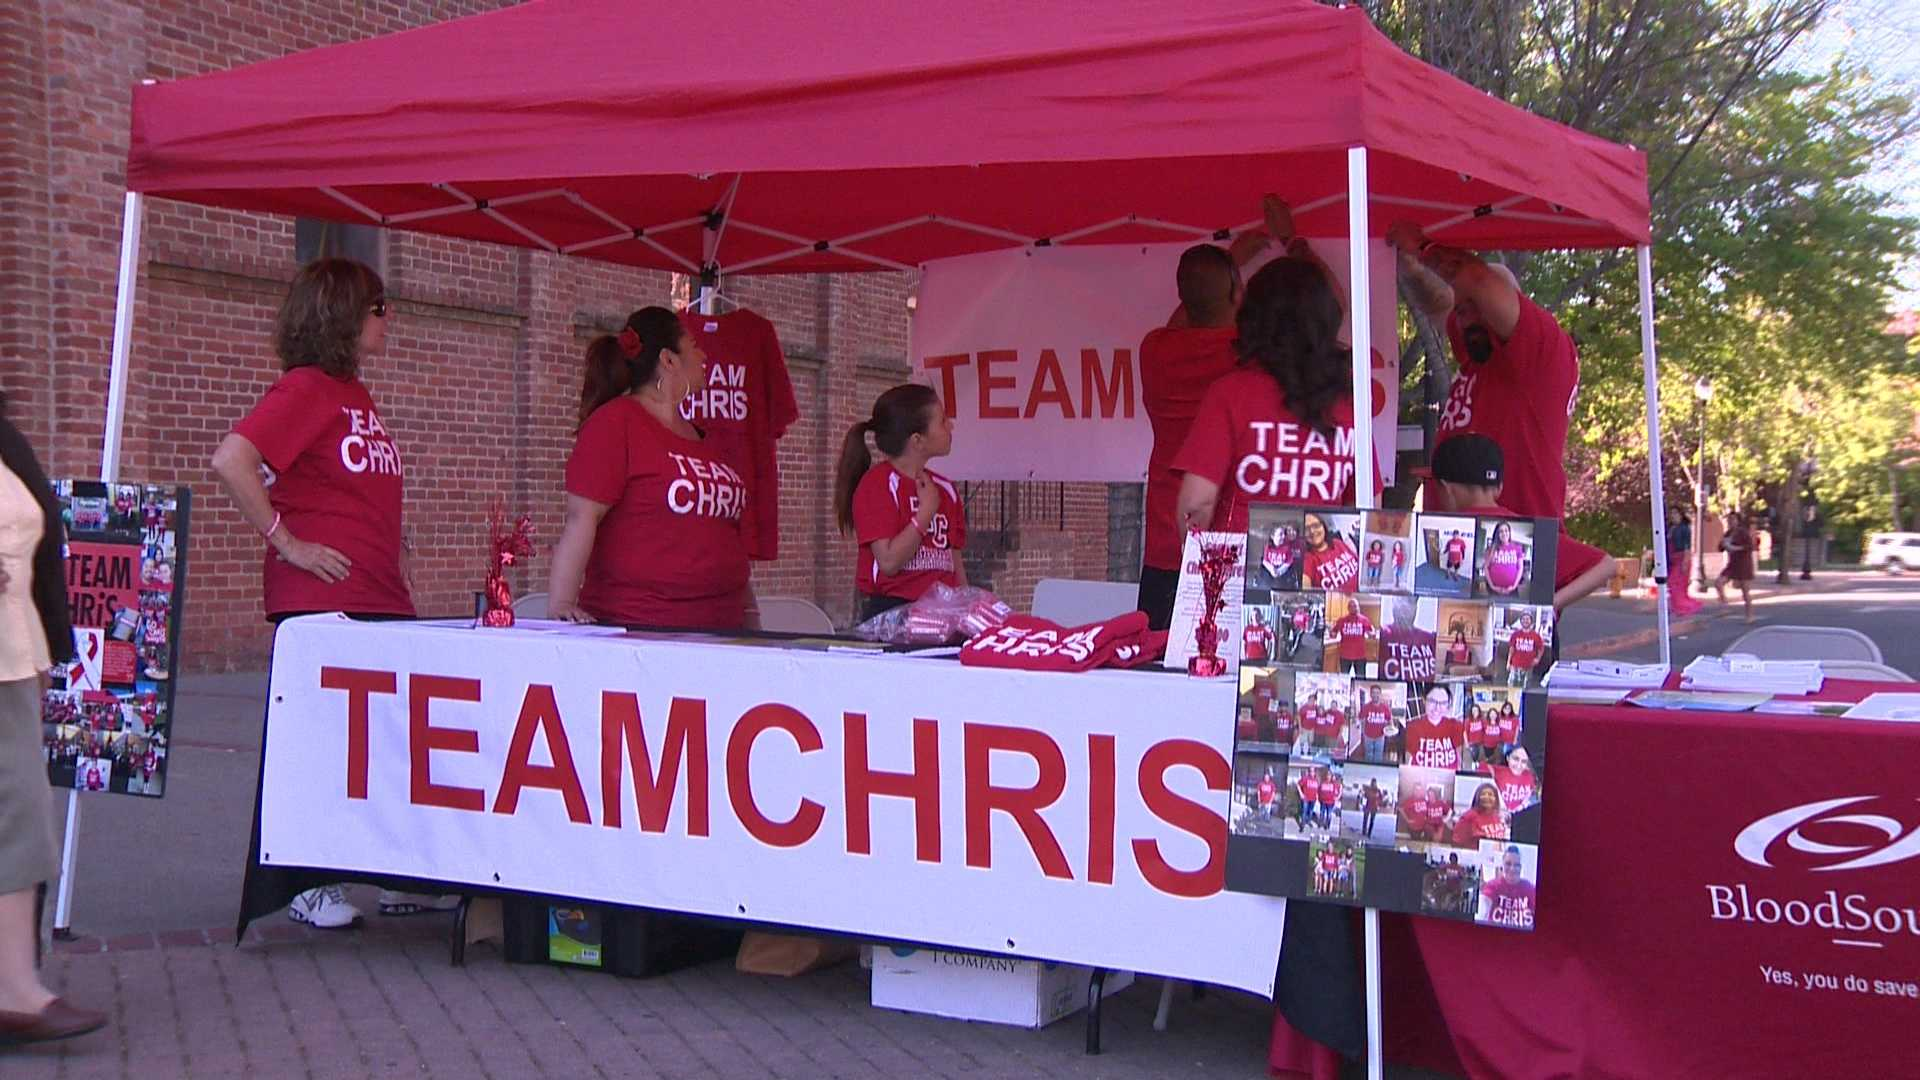 Team Chris raises awareness for bone marrow donation during an event on Thursday, March 31, 2016.